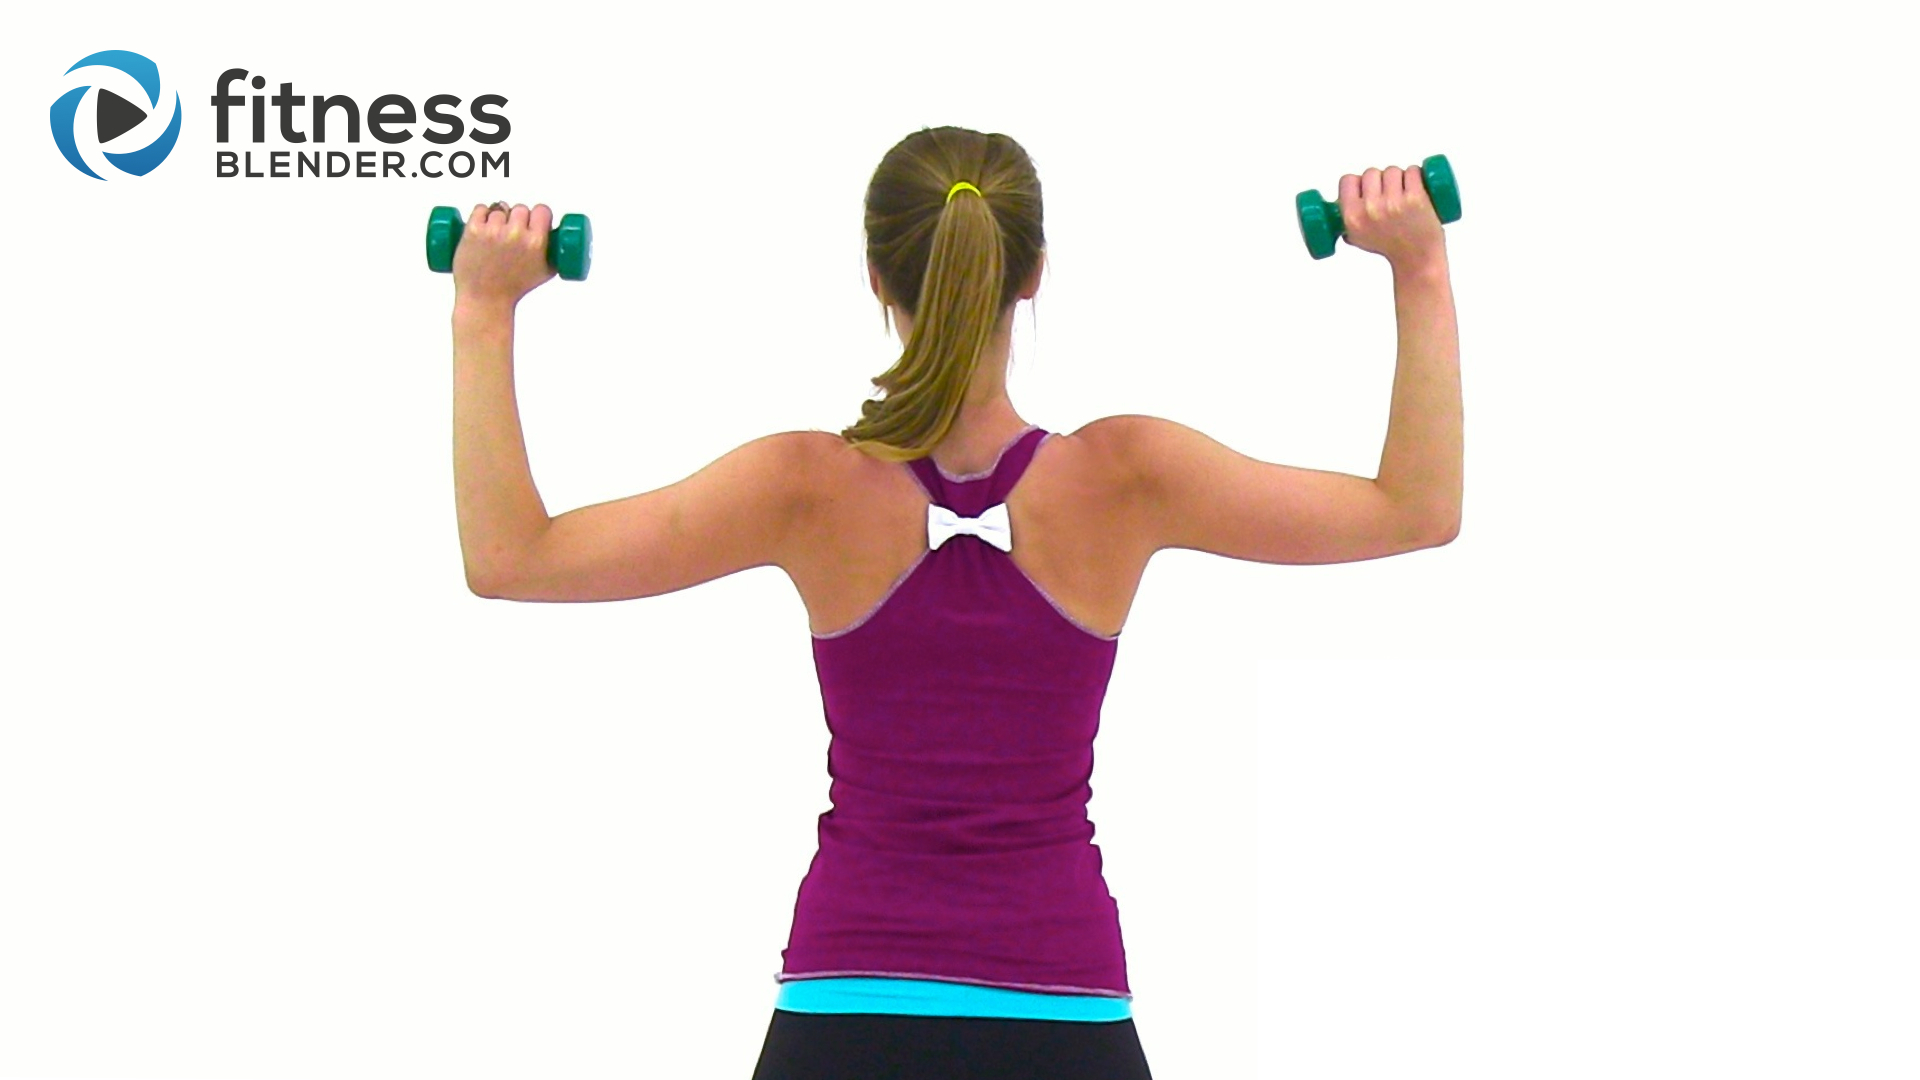 Tank Top Arms Workout Arms Chest Back And Shoulders